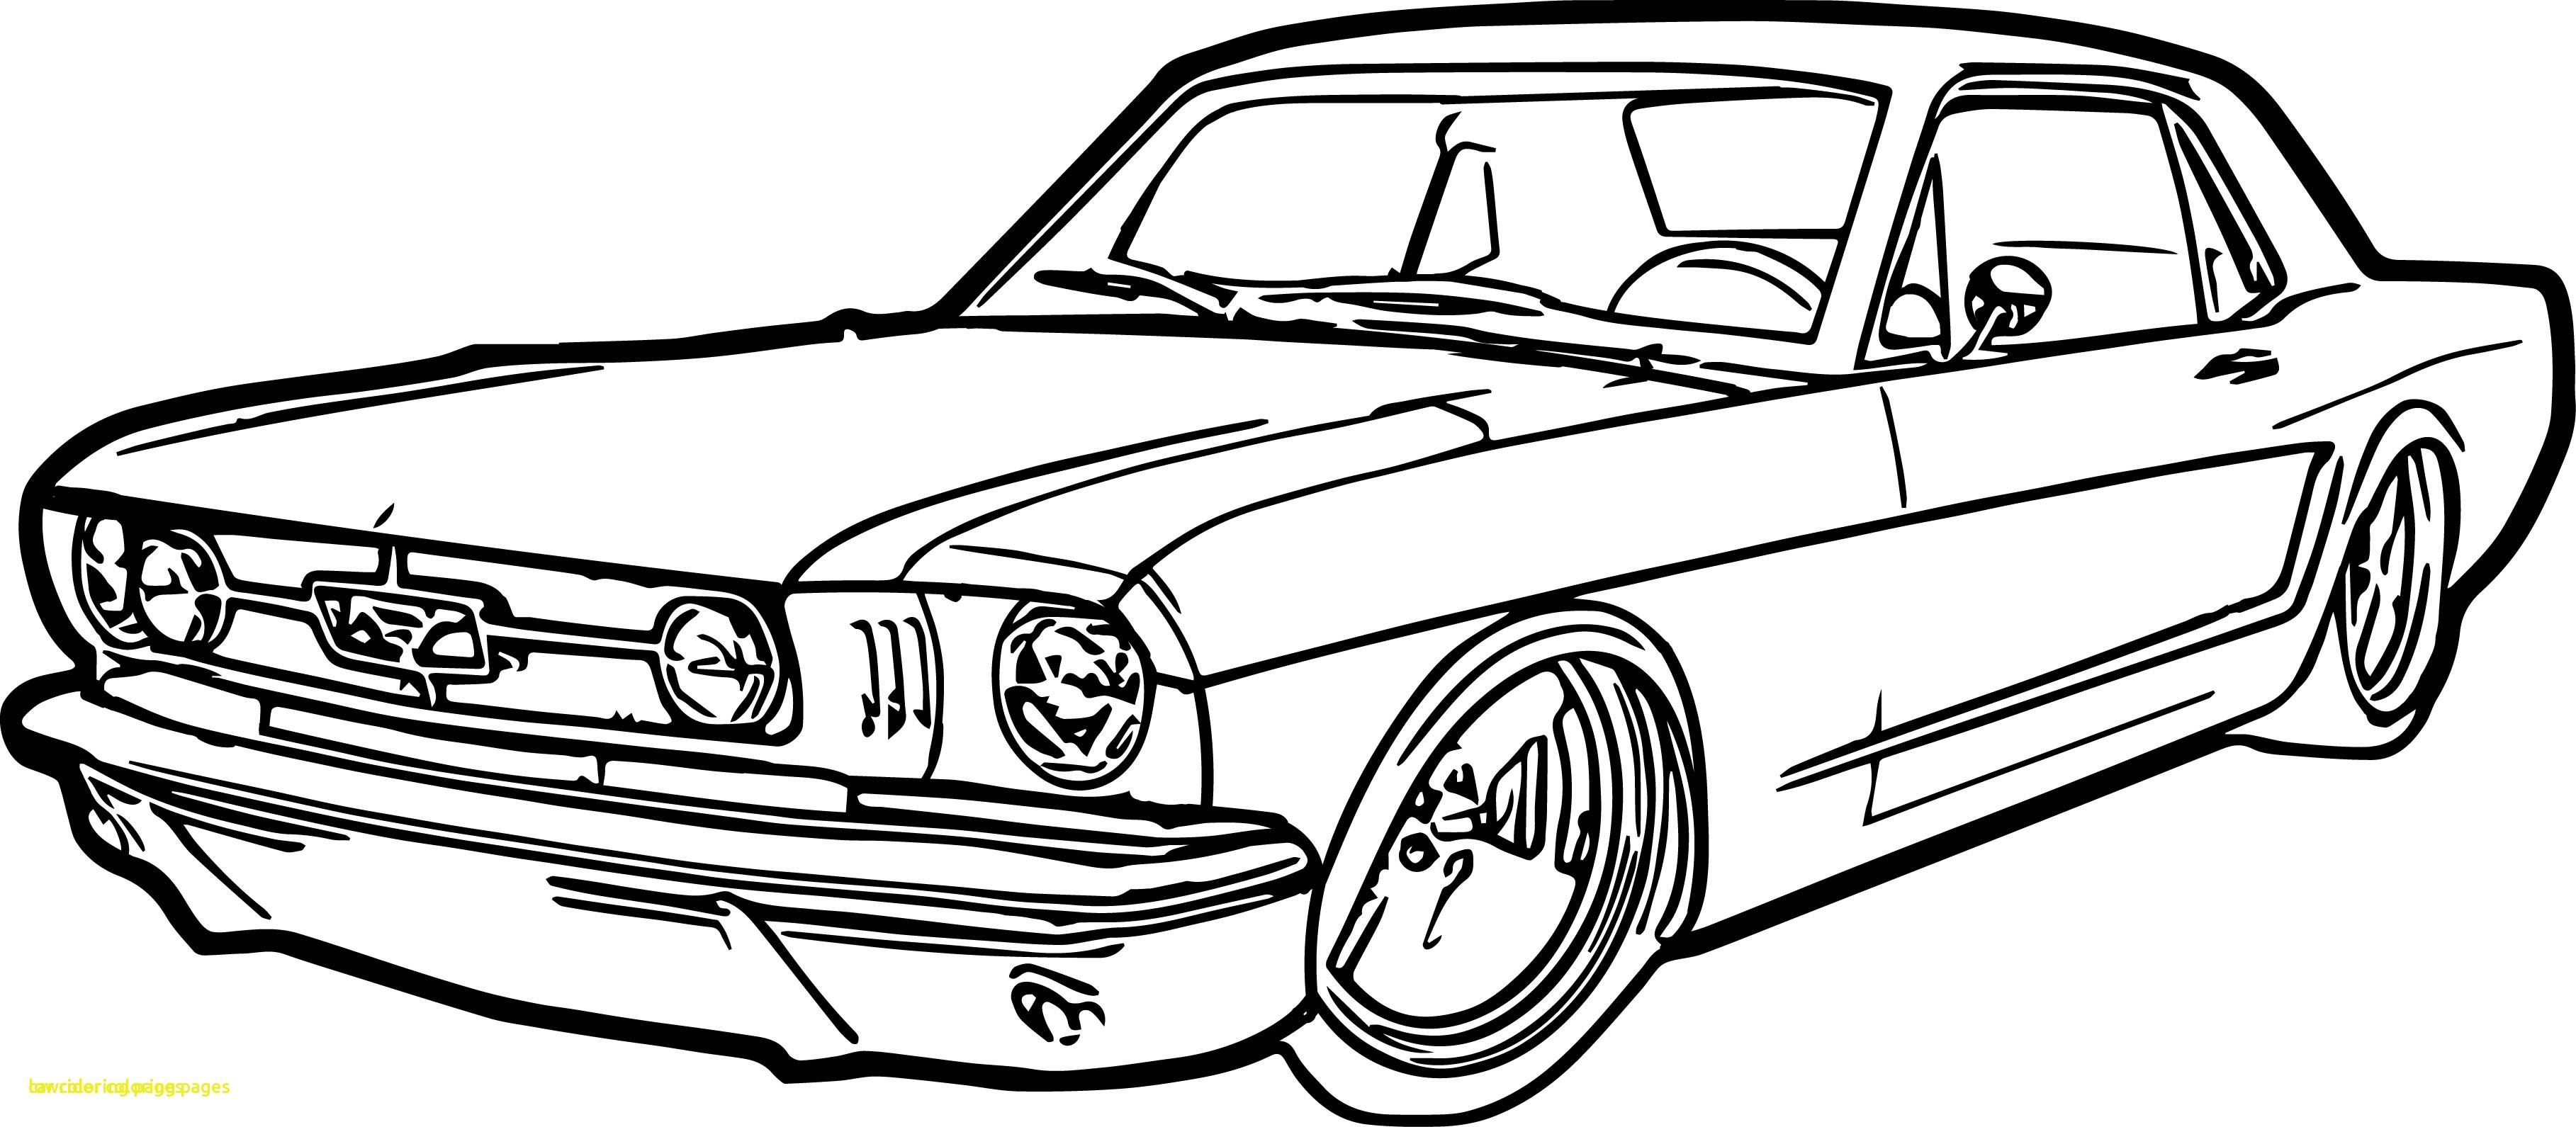 lowrider truck coloring pages low rider drawing at getdrawings free download pages lowrider truck coloring